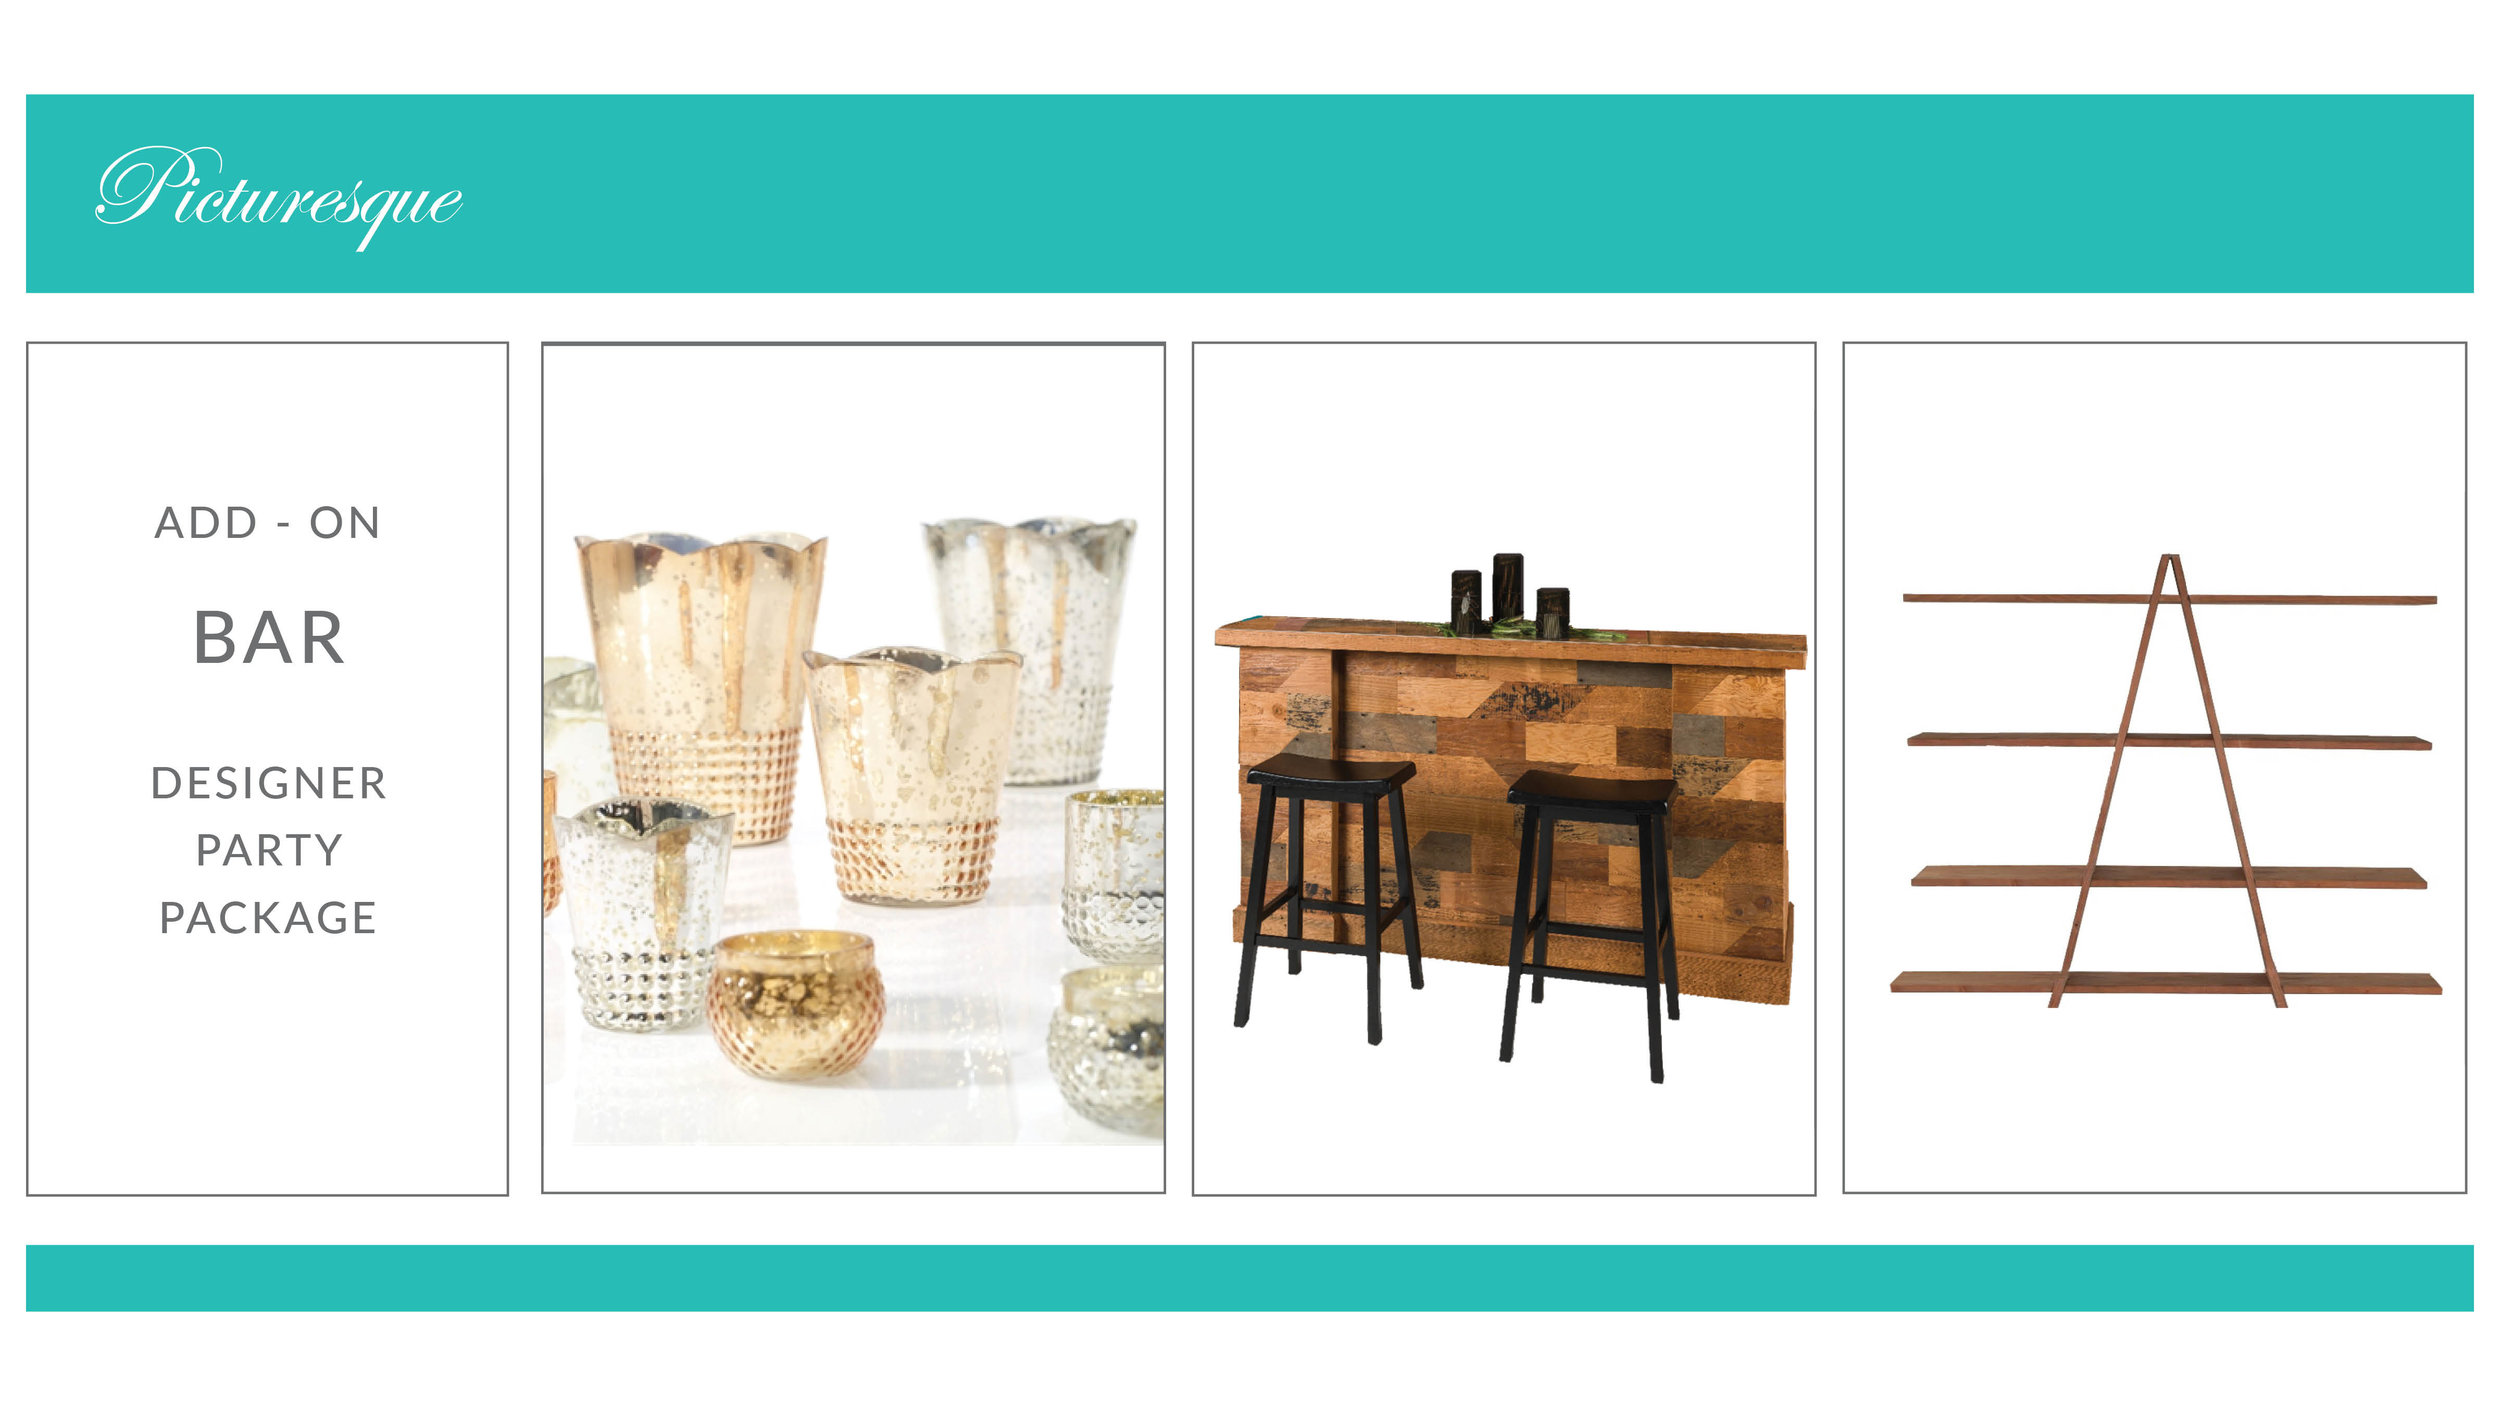 ADD-ON: Picturesque Bar Package